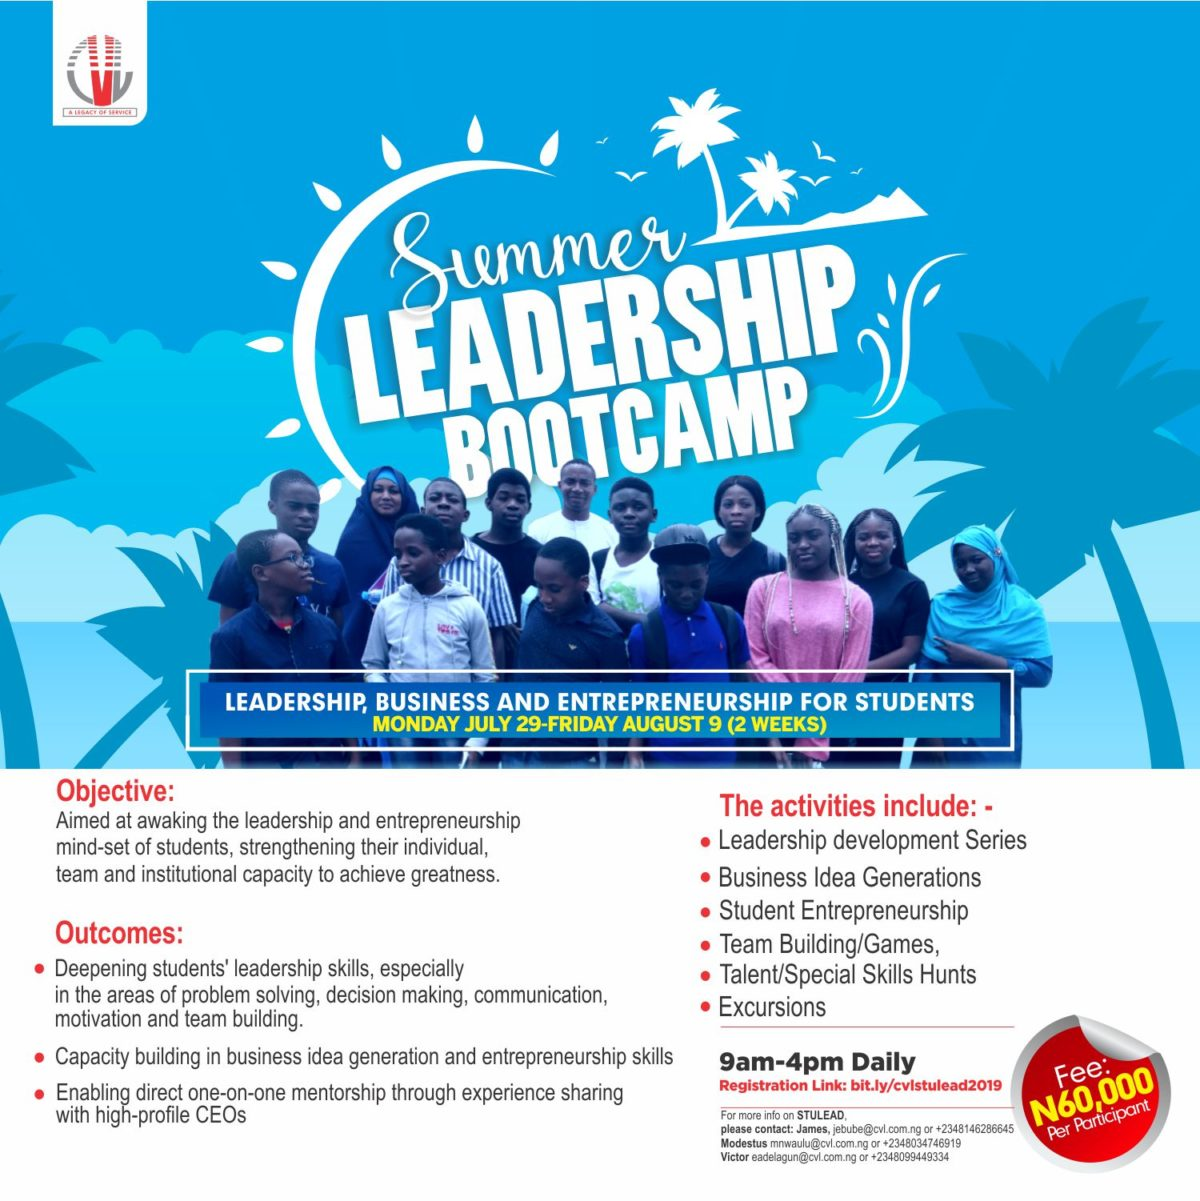 CVL Summer Leadership Bootcamp 2019